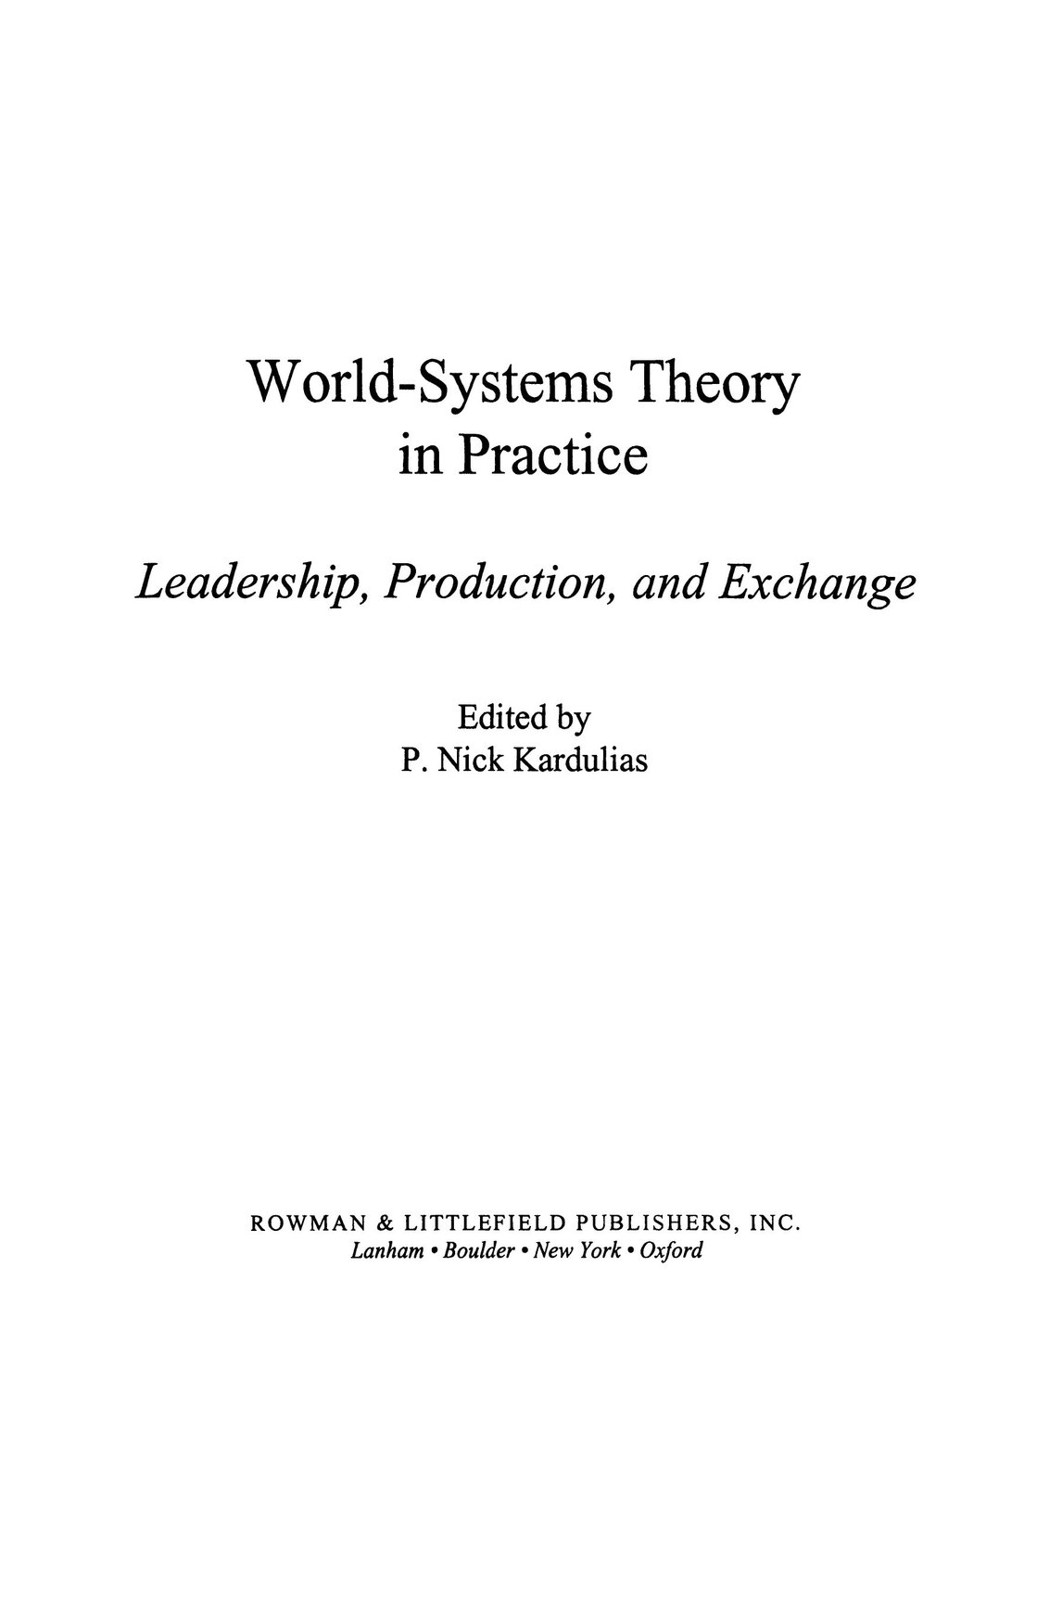 World-Systems Theory in Practice: Leadership, Production, and Exchange